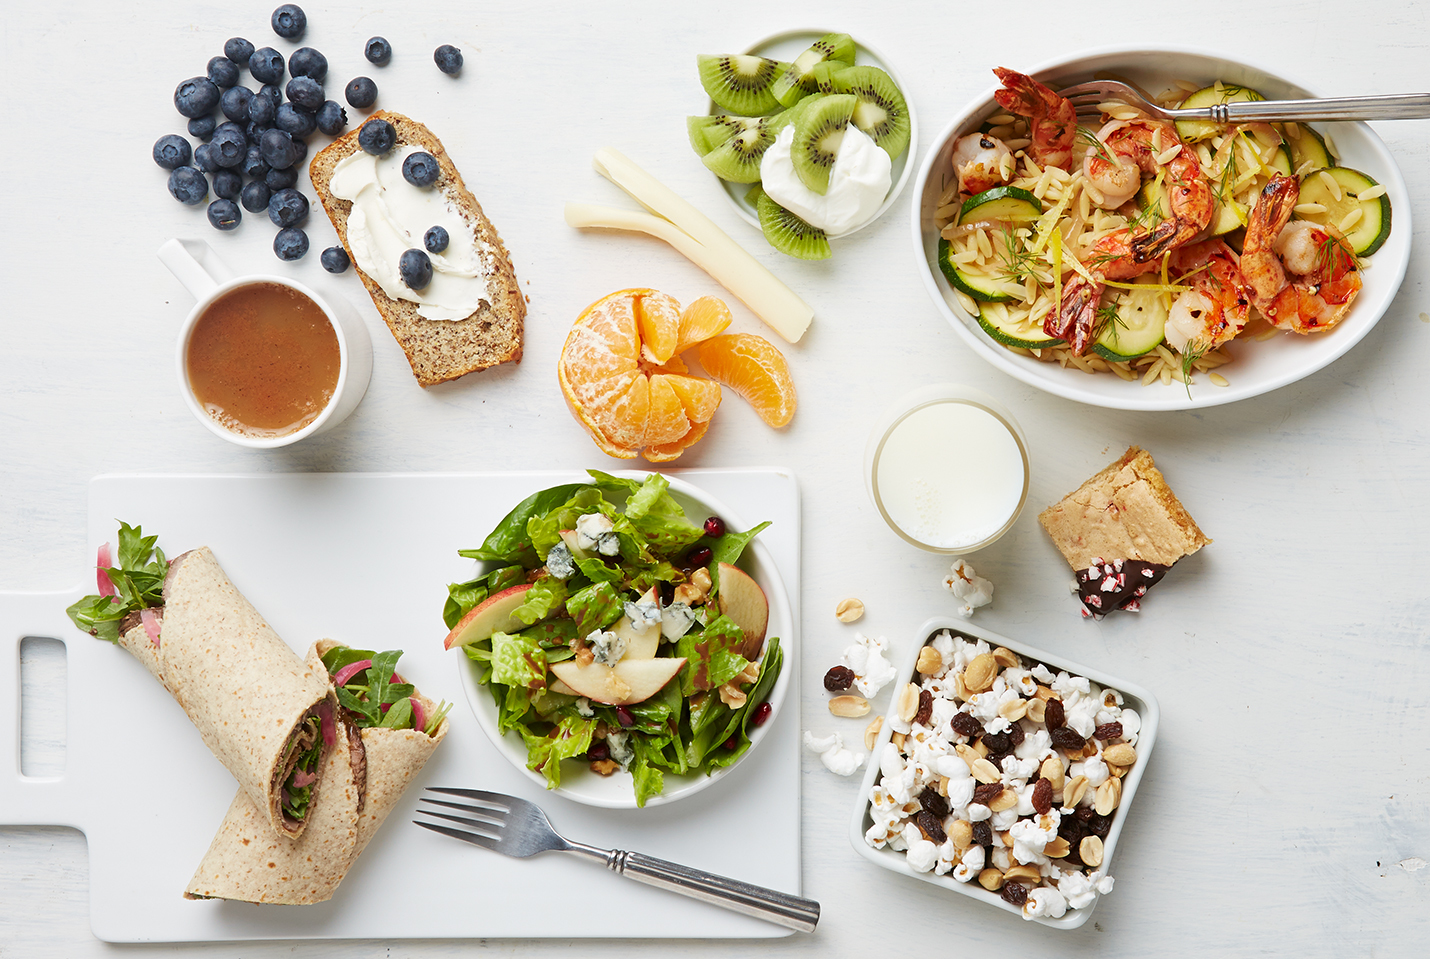 18 High-Fiber & Low-Carb Foods a Nutritionist Wants to Add to Your Diet